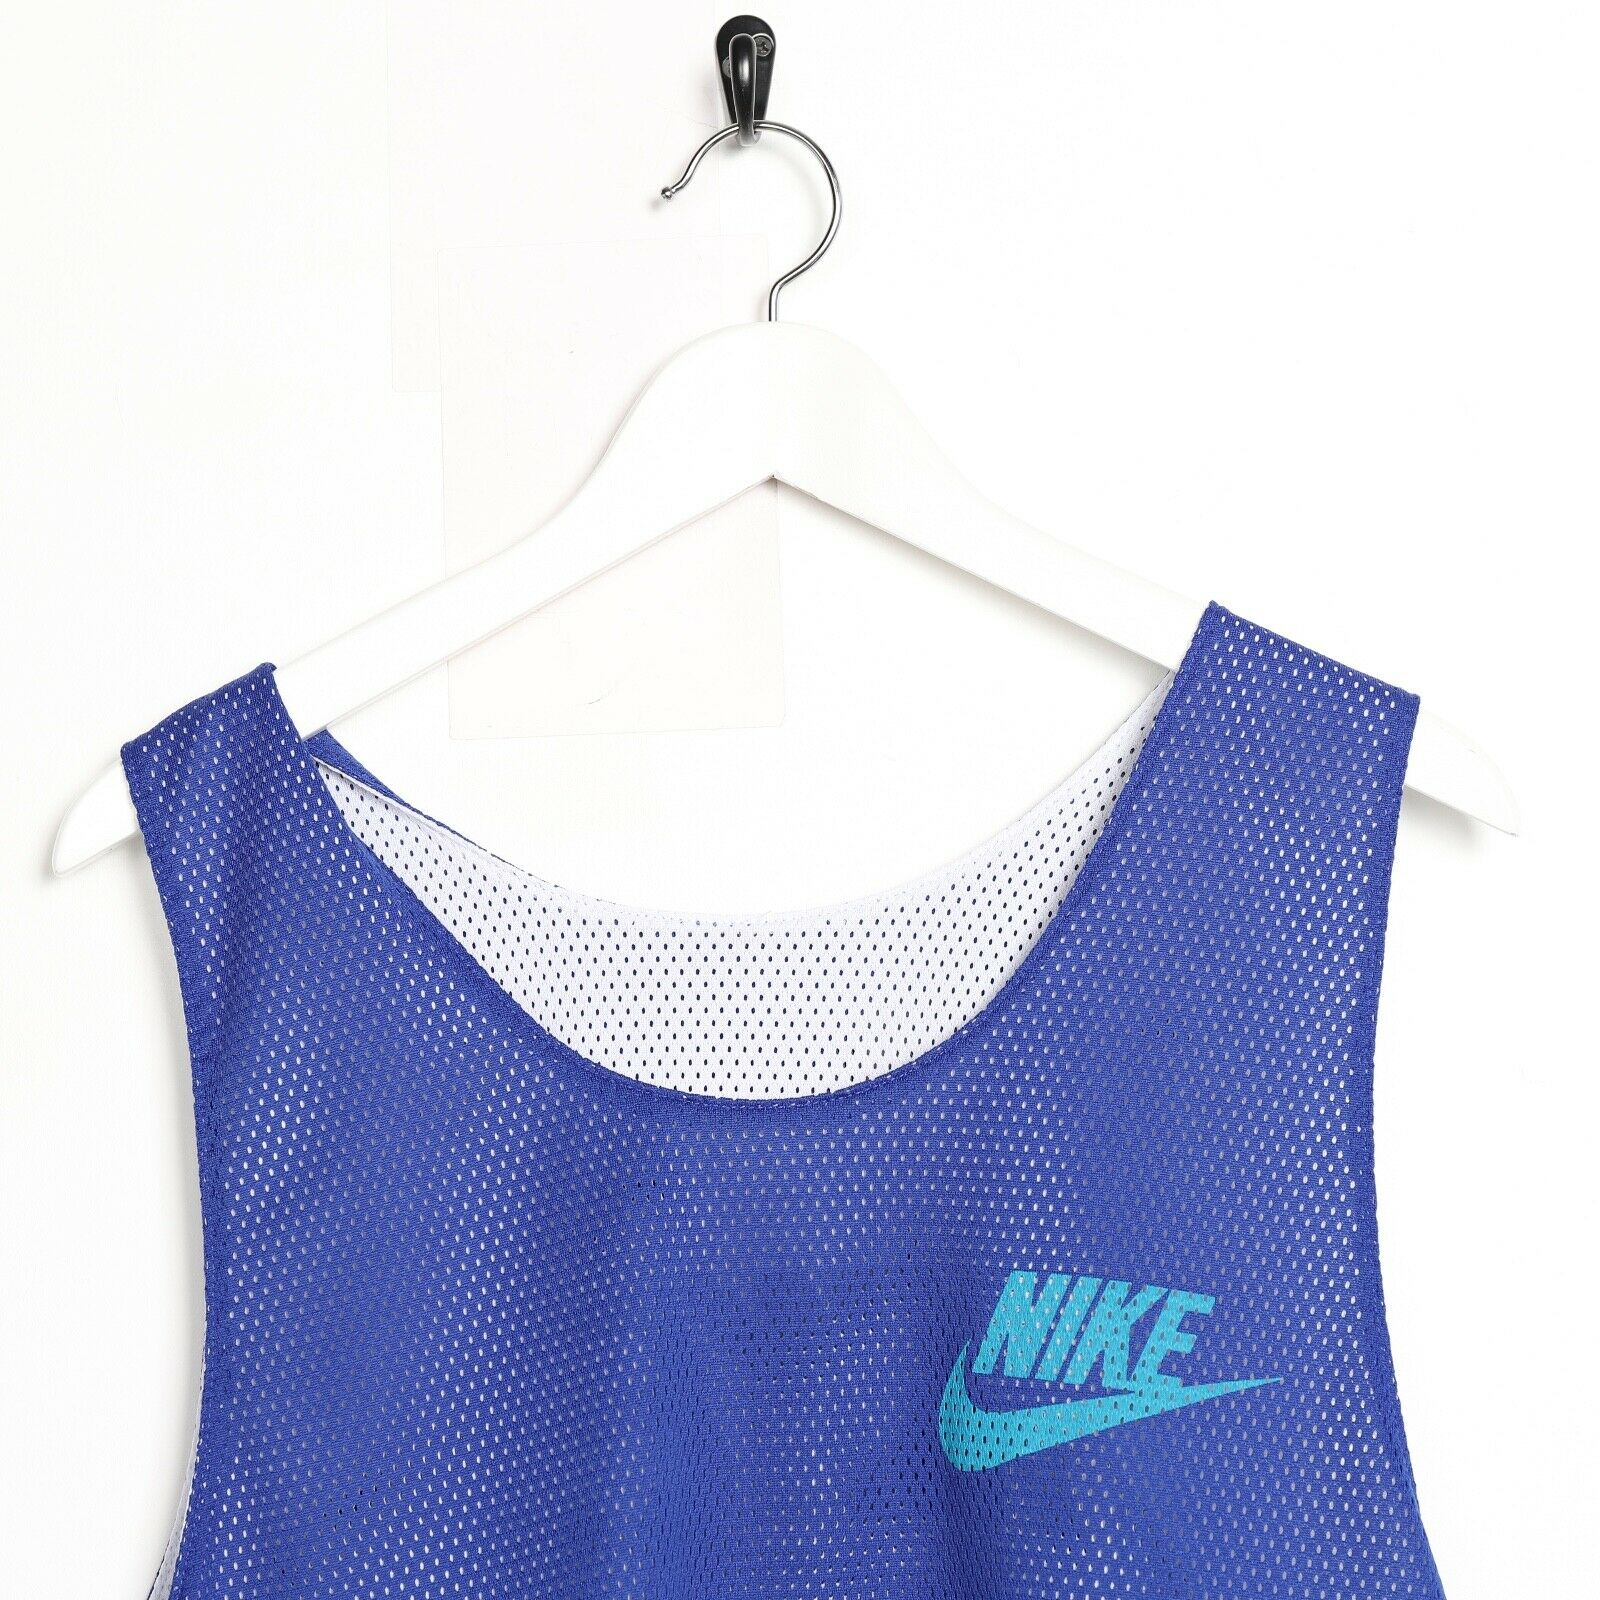 Vintage NIKE Reversible Big Spell Out Mesh Vest White Blue | Medium M